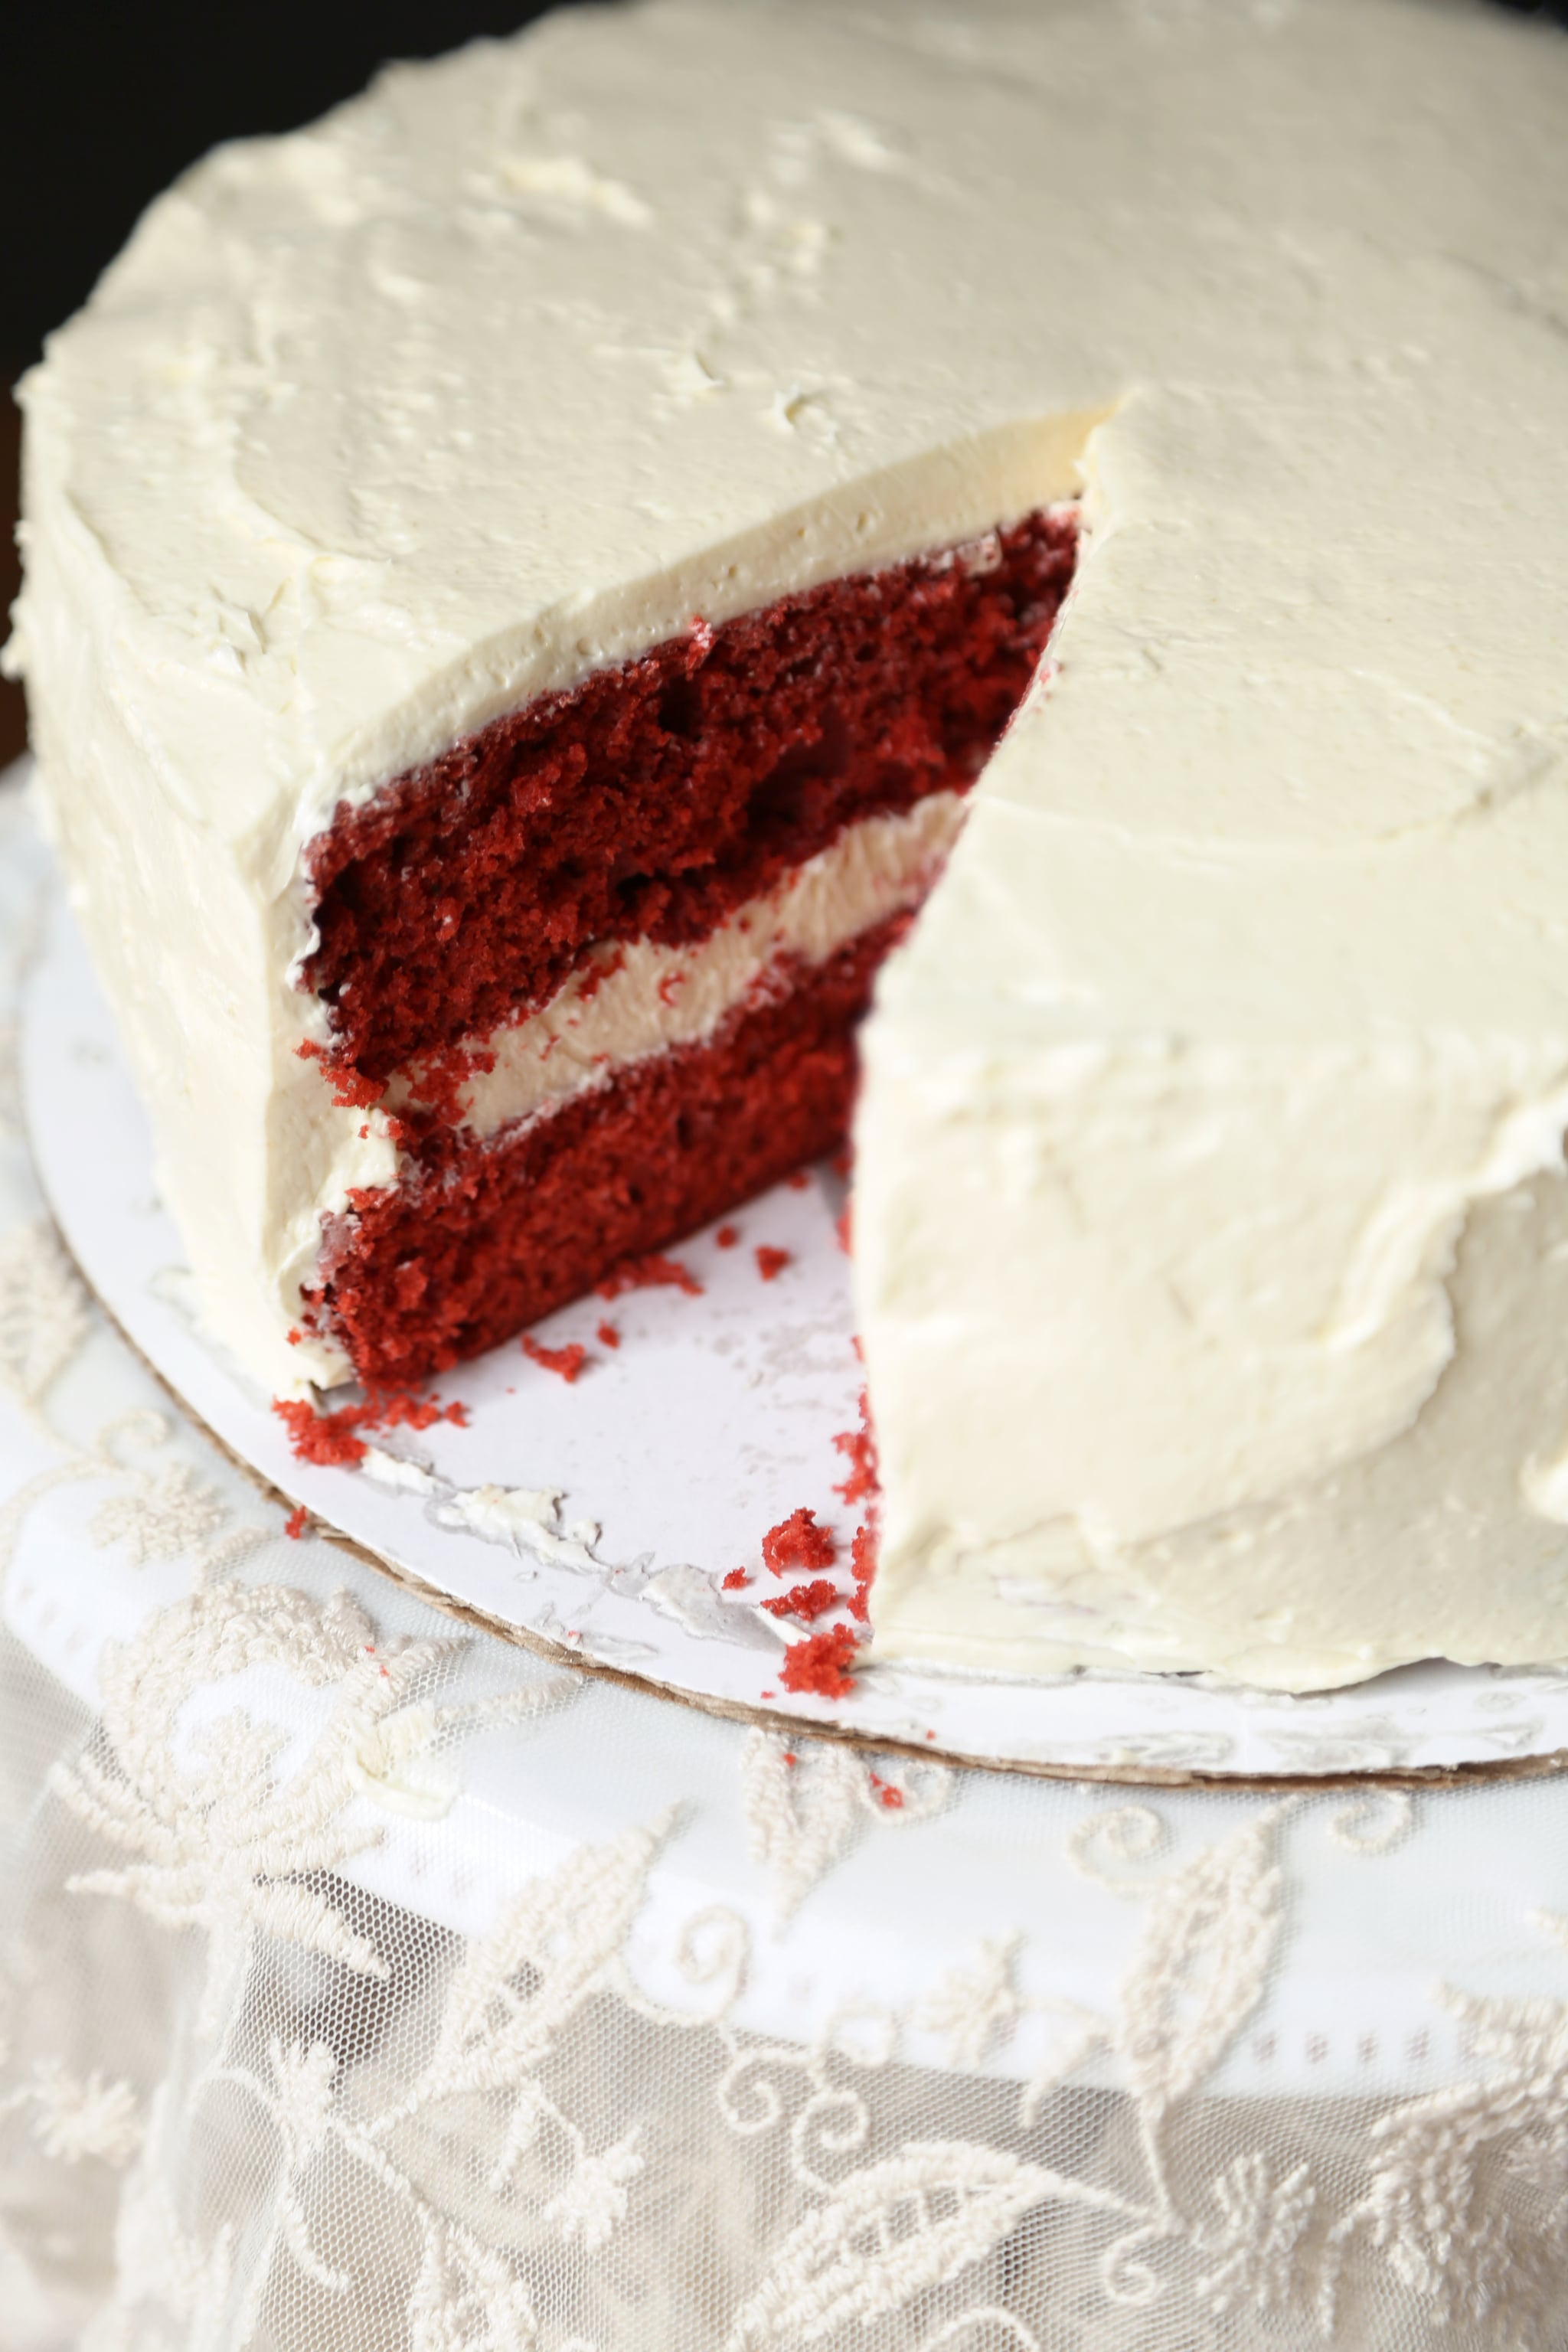 This Traditional Frosting Recipe Will Take Your Red Velvet Cake to the Next Level